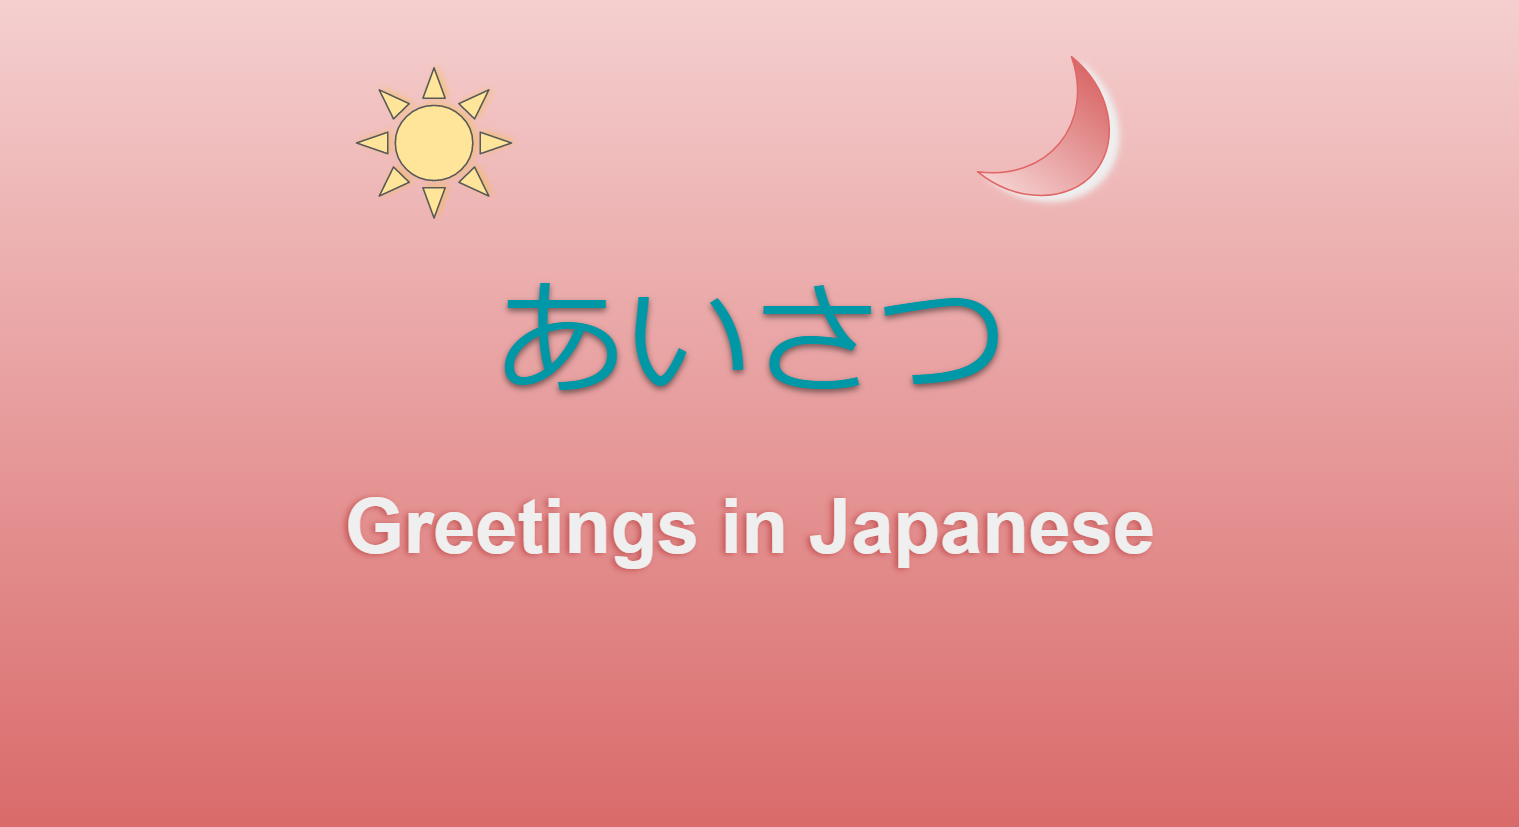 Jlpt N5 Lesson 8 Japanese Everyday Greetings